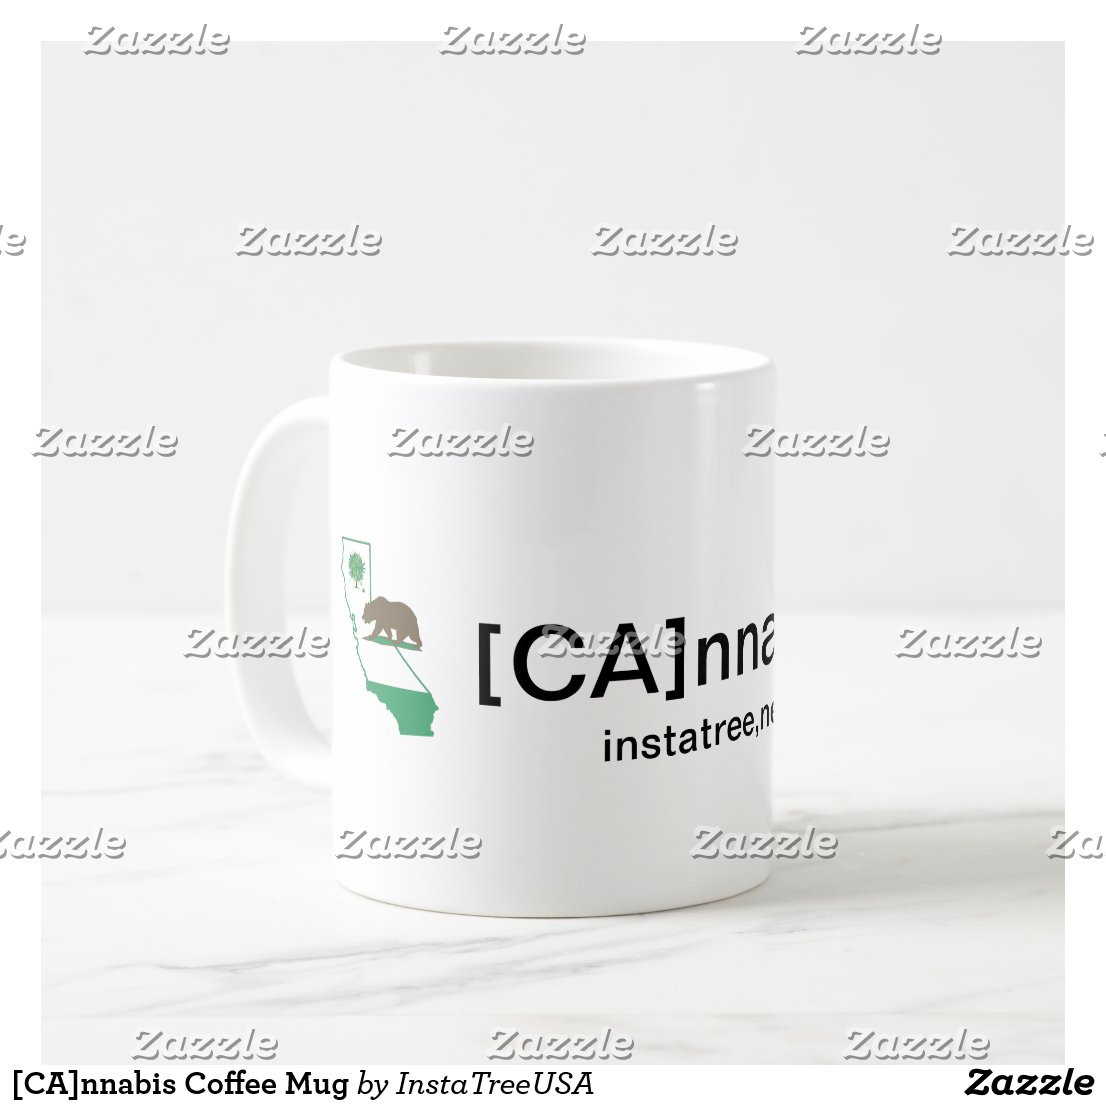 [CA]nnabis Coffee Mug